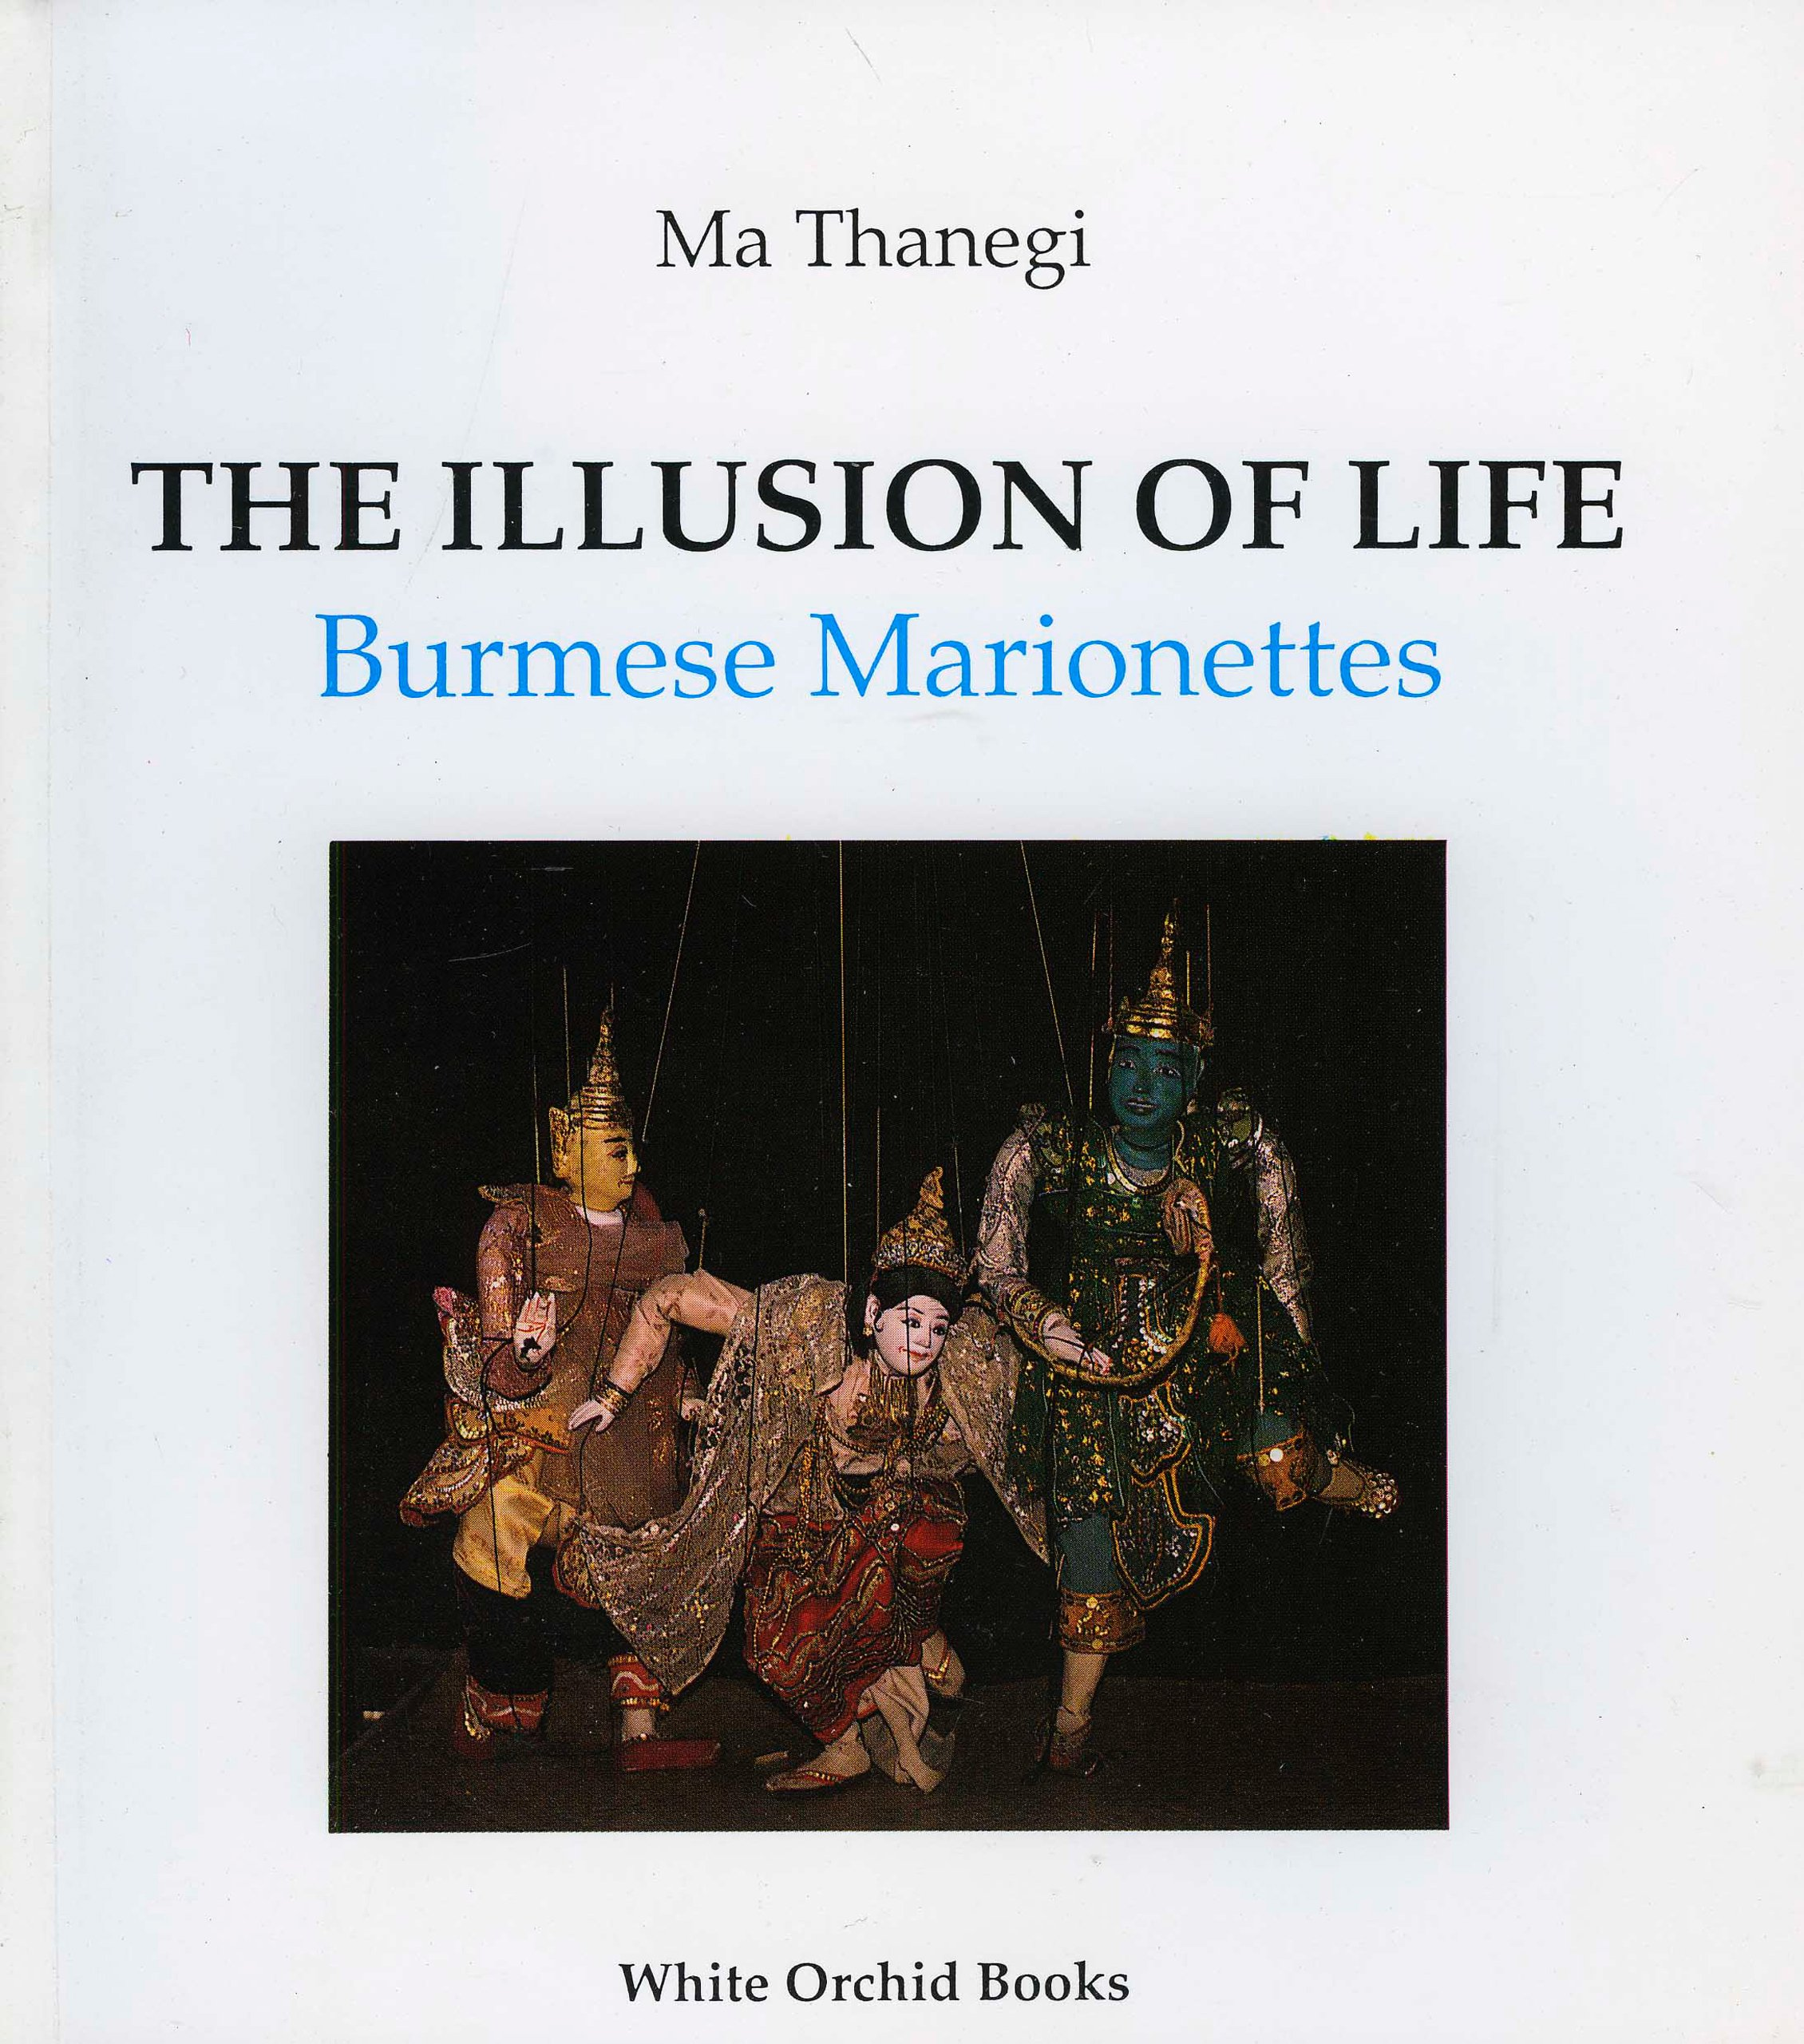 The Illusion of Life: Burmese Marionettes (White orchid books)